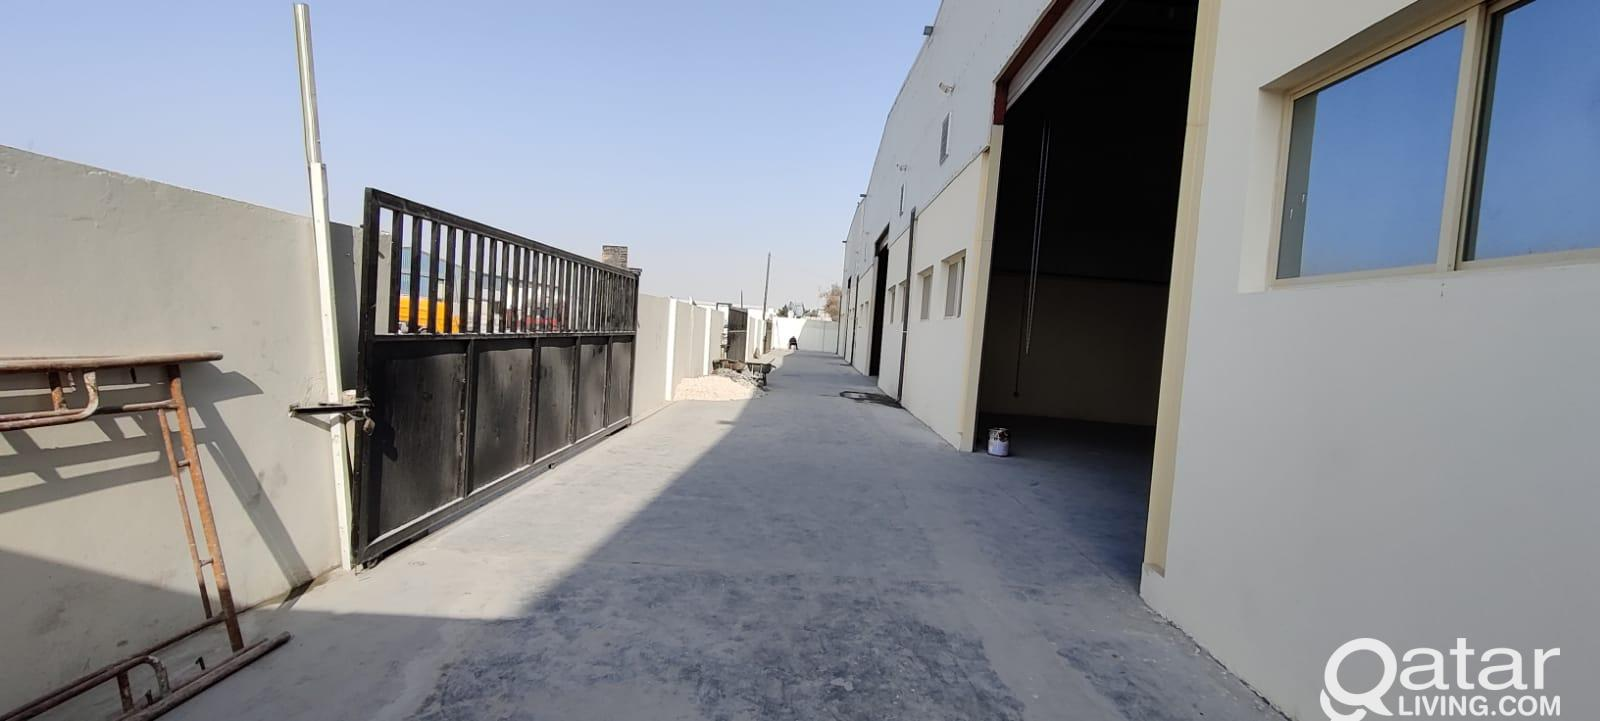 Brand new warehouses For Rent - Close to Salwa Roa